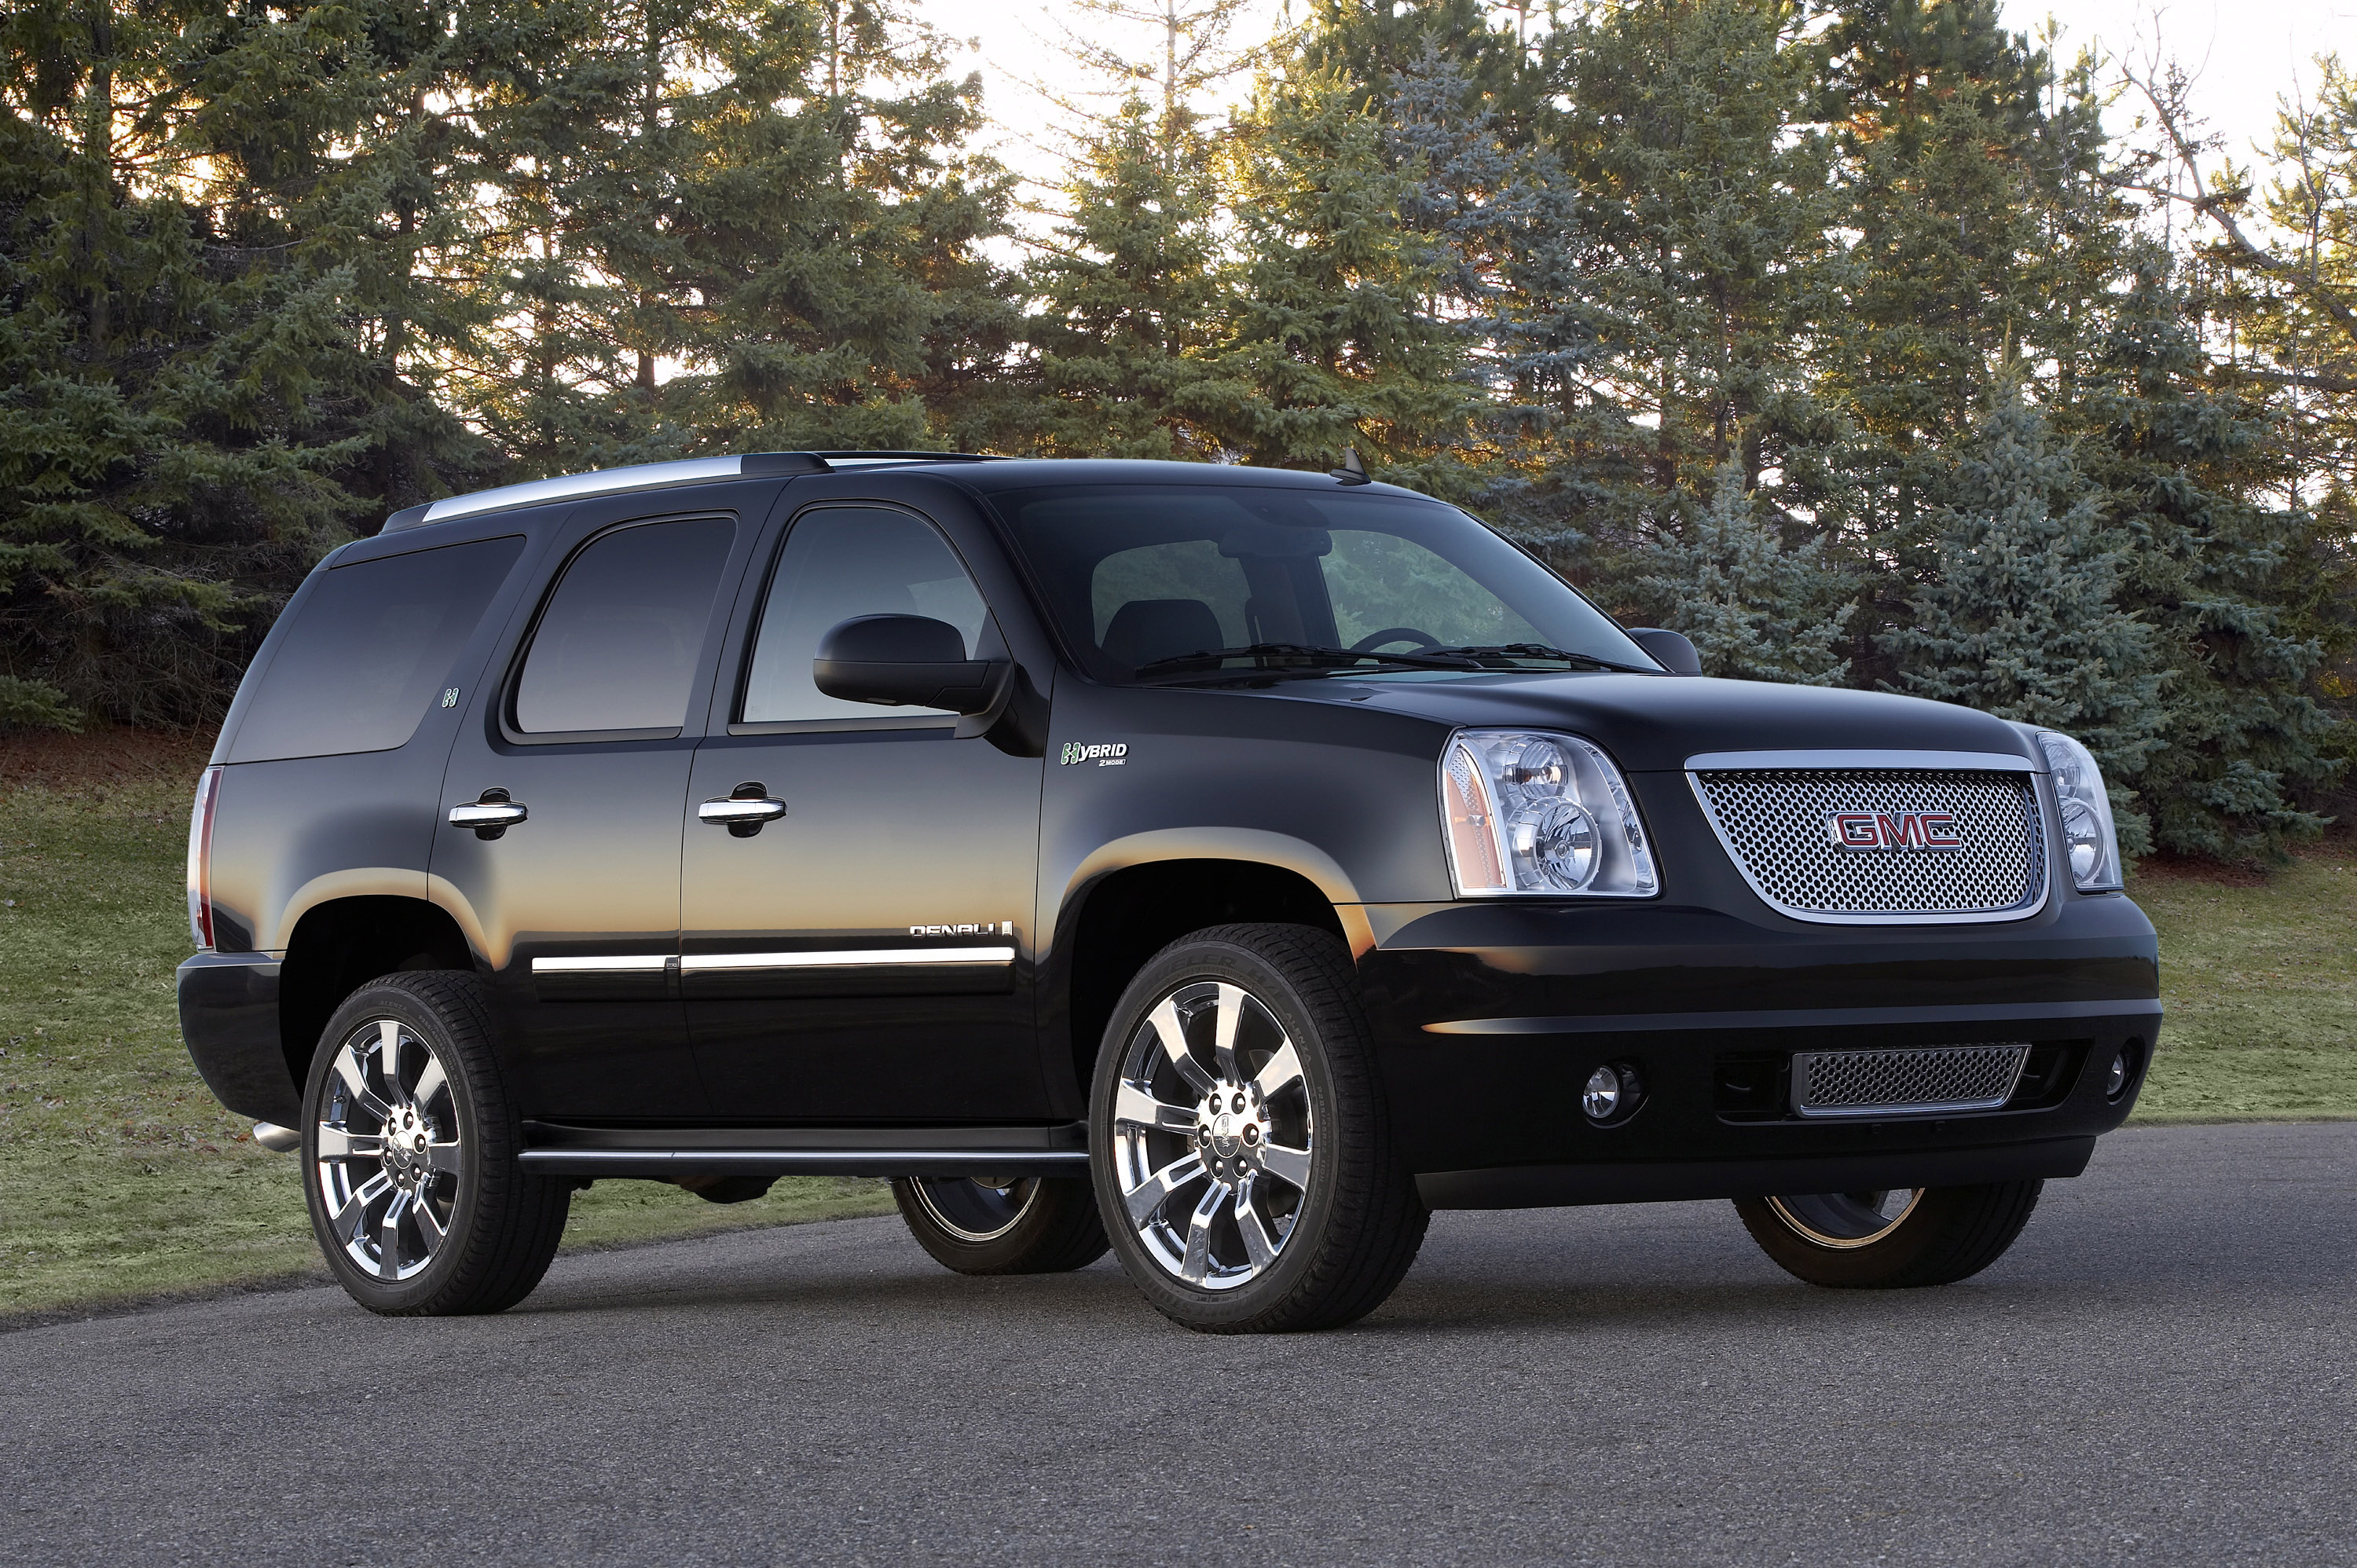 united gmc yukon pages images en vehicles xl galleries photos denali content detail media pressroom states us yukonxl